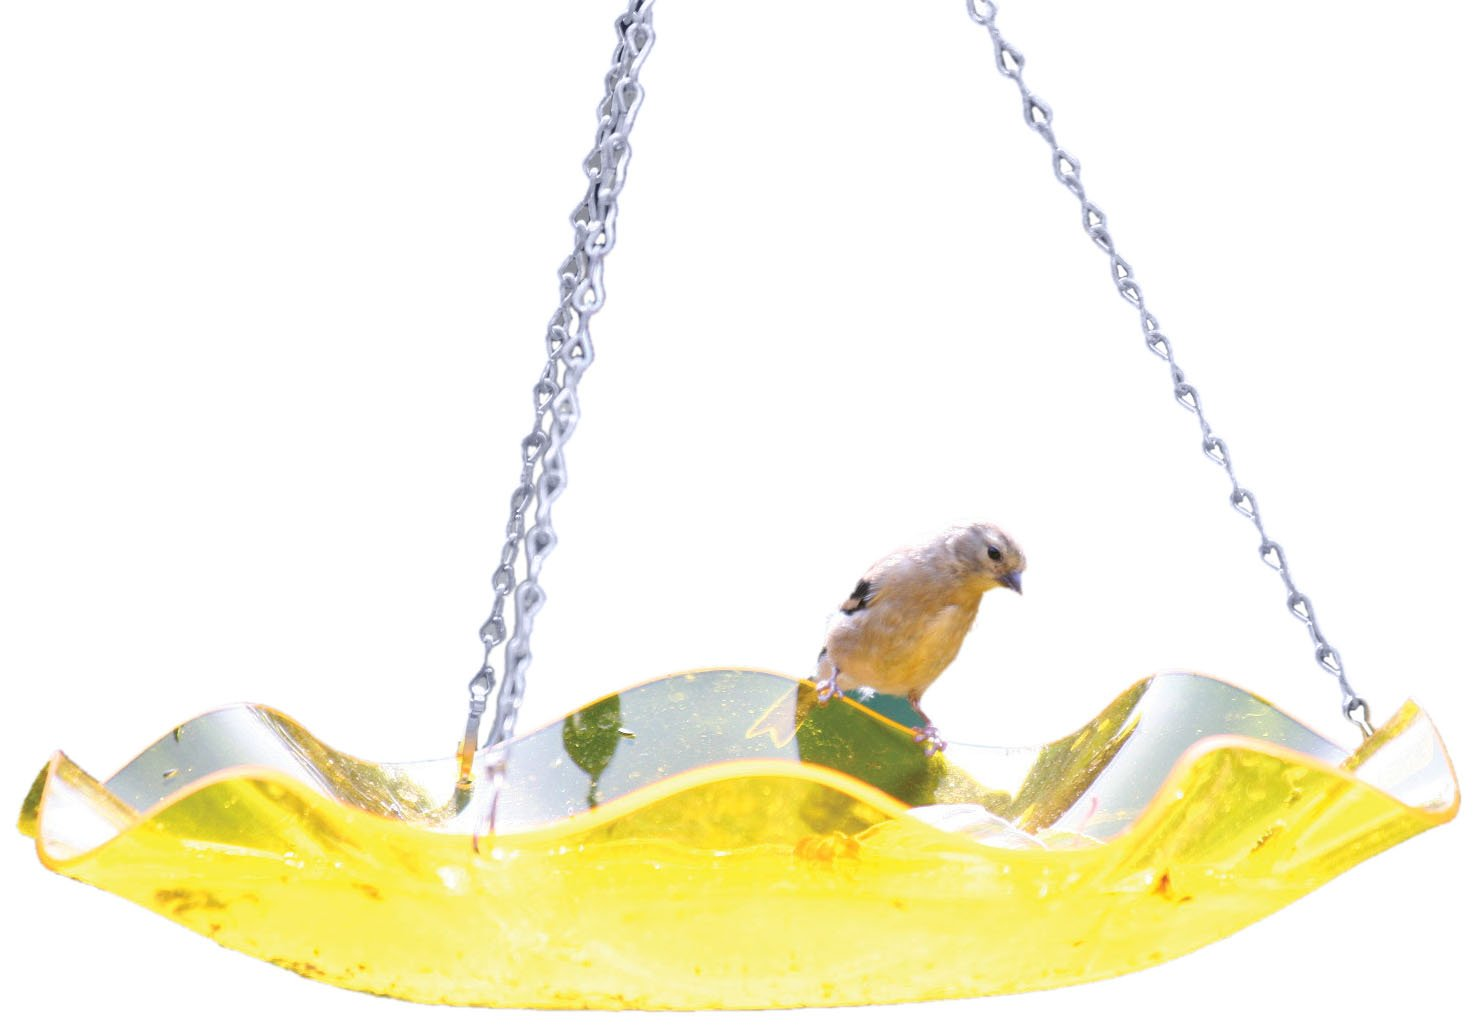 Birds Choice Hanging Acrylic Bird Bath, Yellow Bird' s Choice AAH216